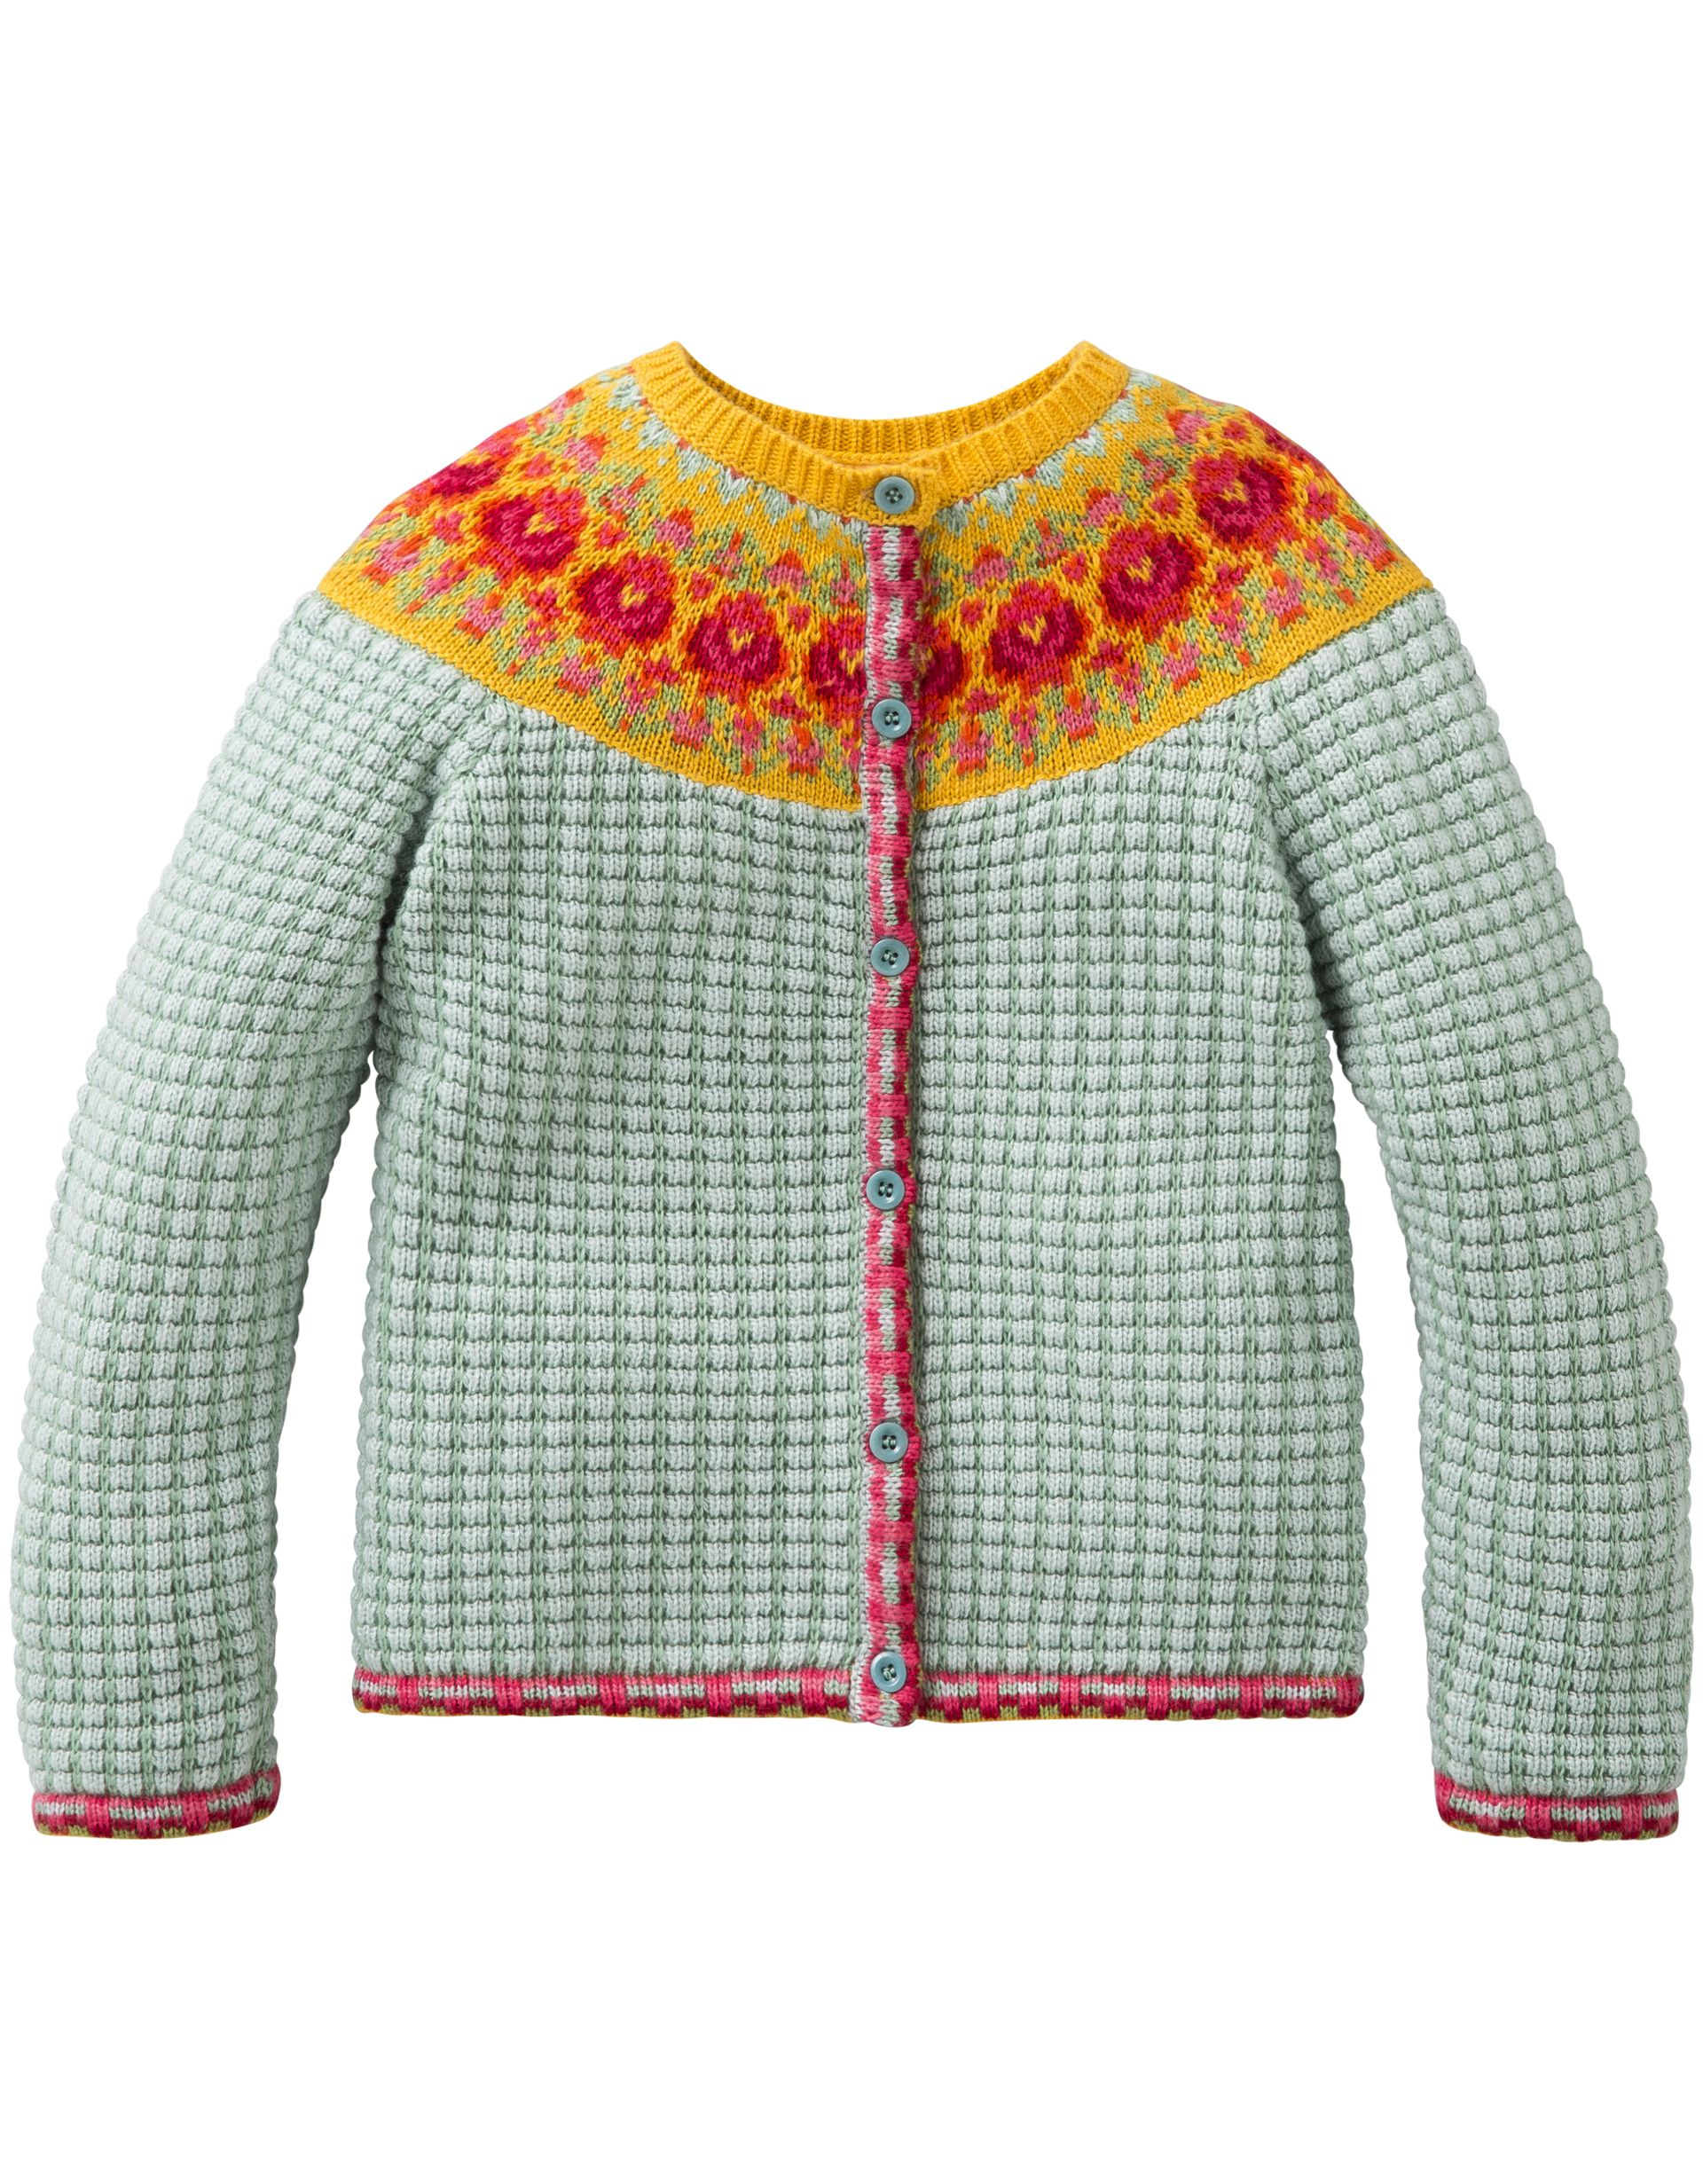 e75721c82 OILILY Children's Wear - Fall Winter 2014 - Cardigan Katie Little Girl  Outfits, Boy Outfits